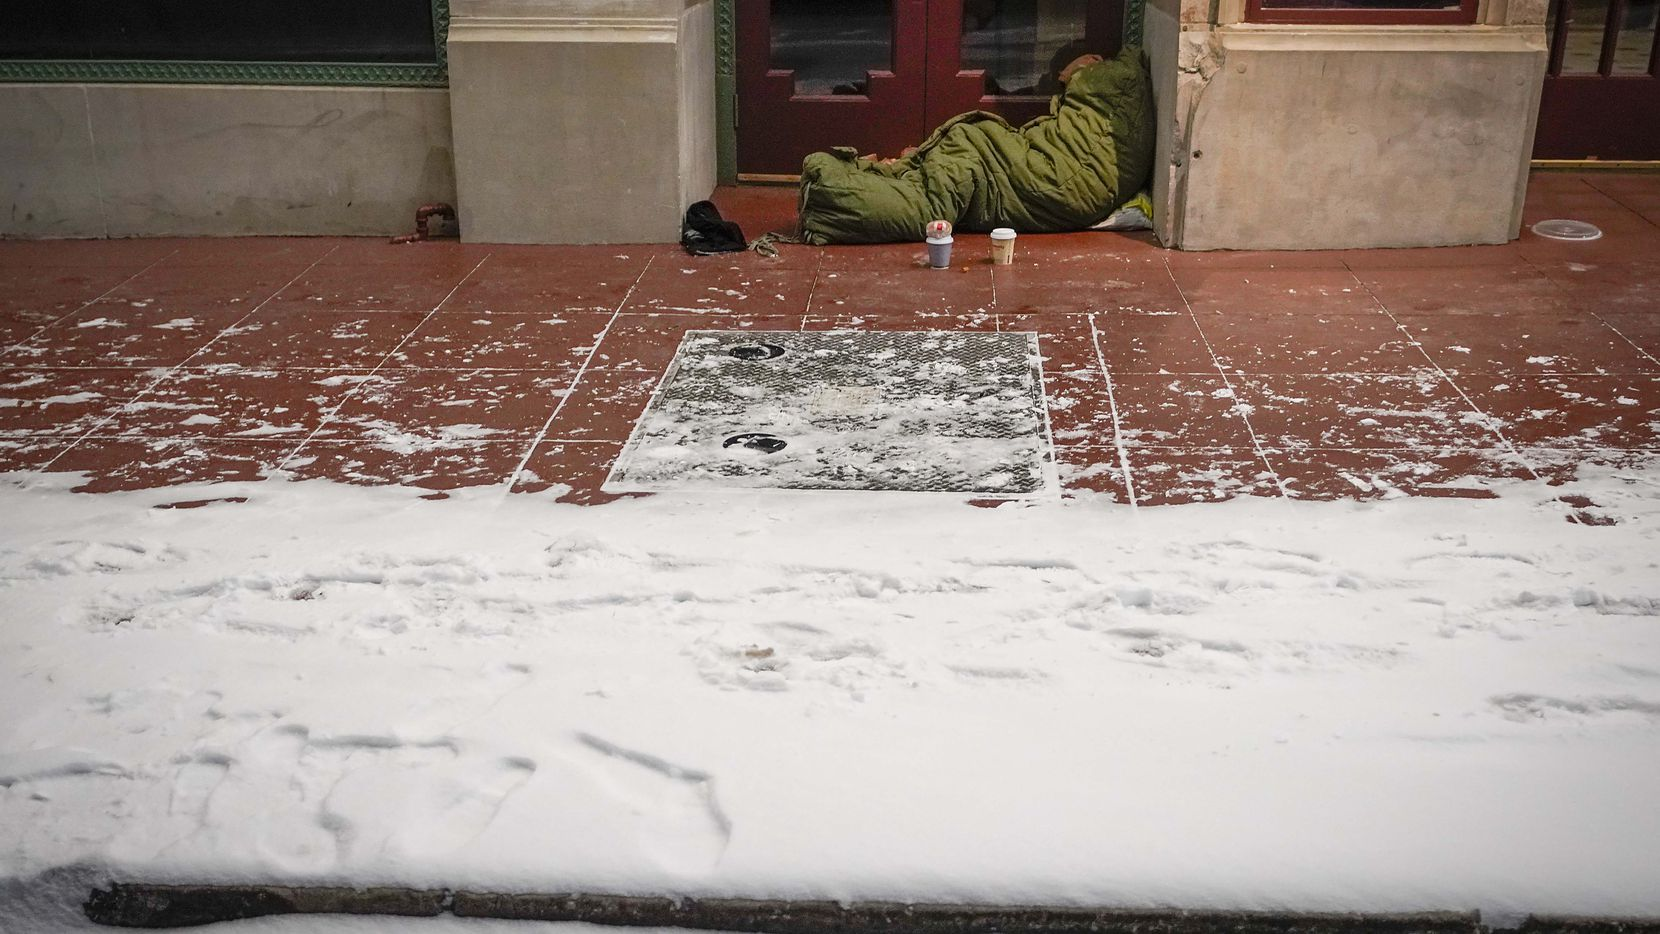 With temperatures already falling into the single digits, a homeless person sleeps in the doorway of the Majestic Theater as a winter storm brings snow and freezing temperatures to North Texas on Sunday, Feb. 14, 2021, in Dallas.